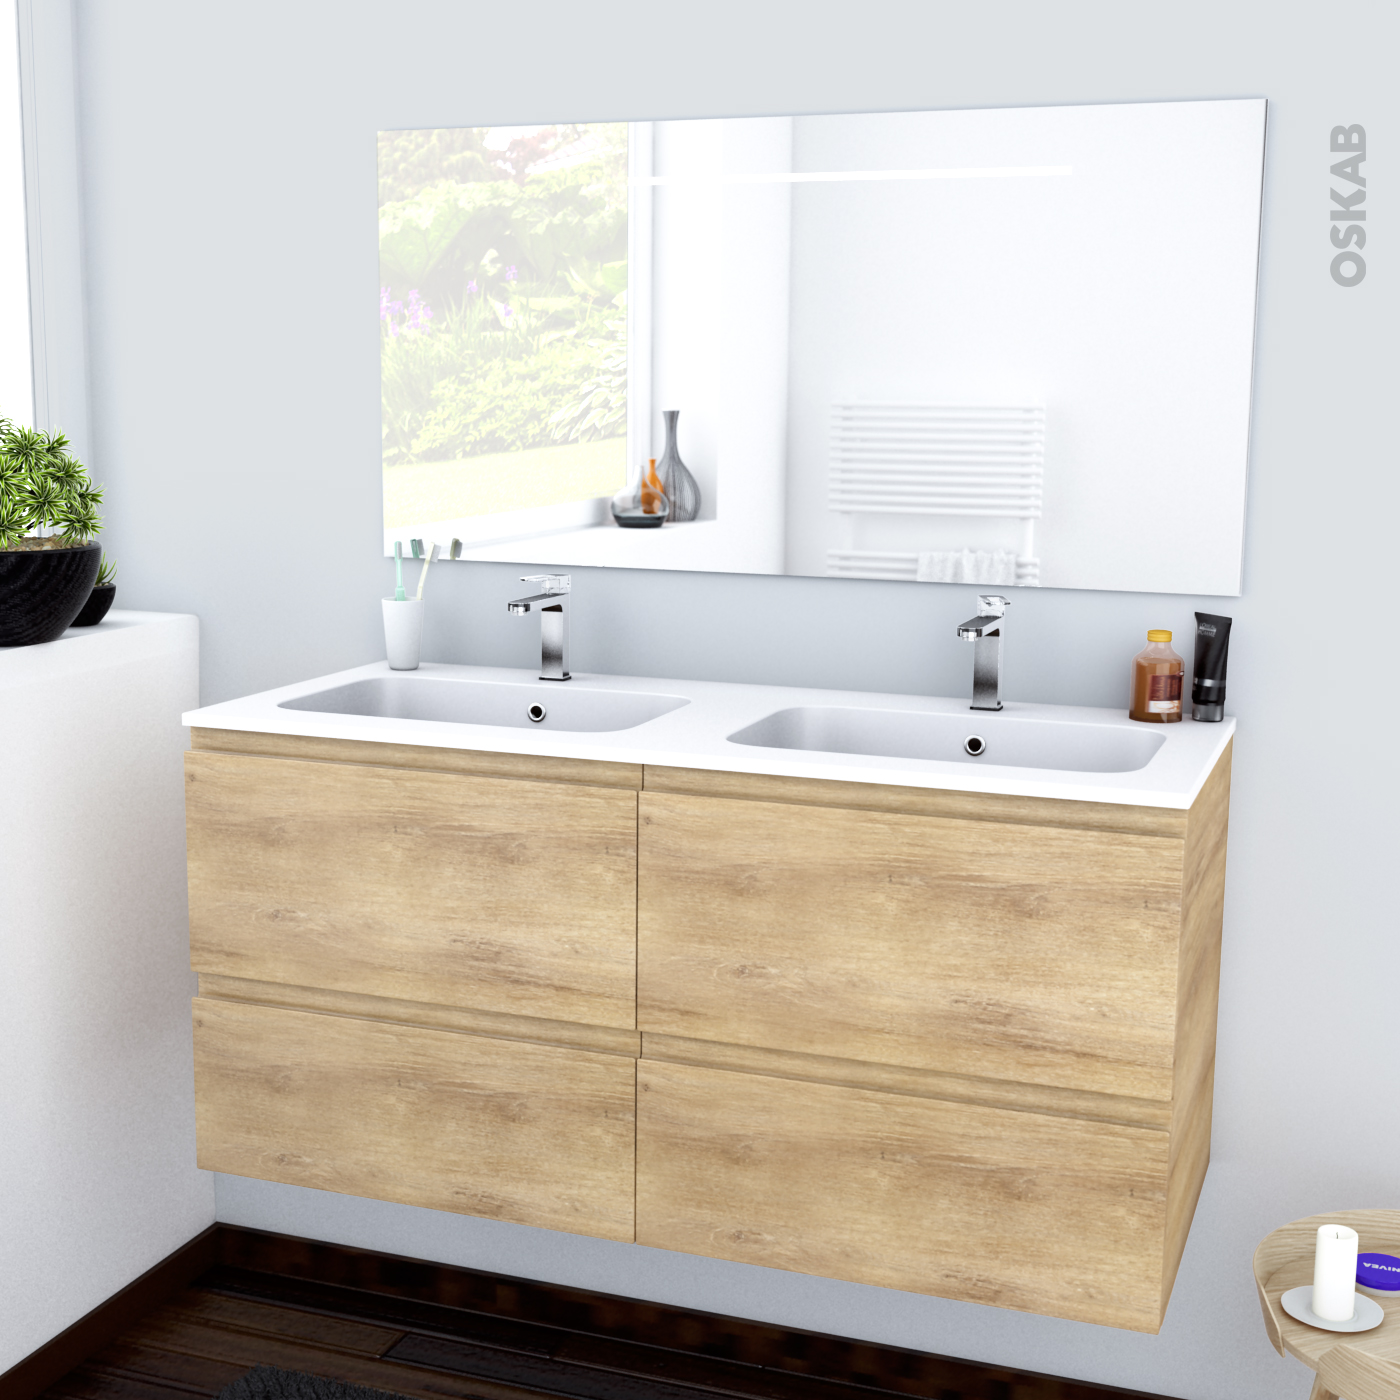 Lavabo double vasque retro simple beliani meuble meubles for Vasque et meuble salle de bain